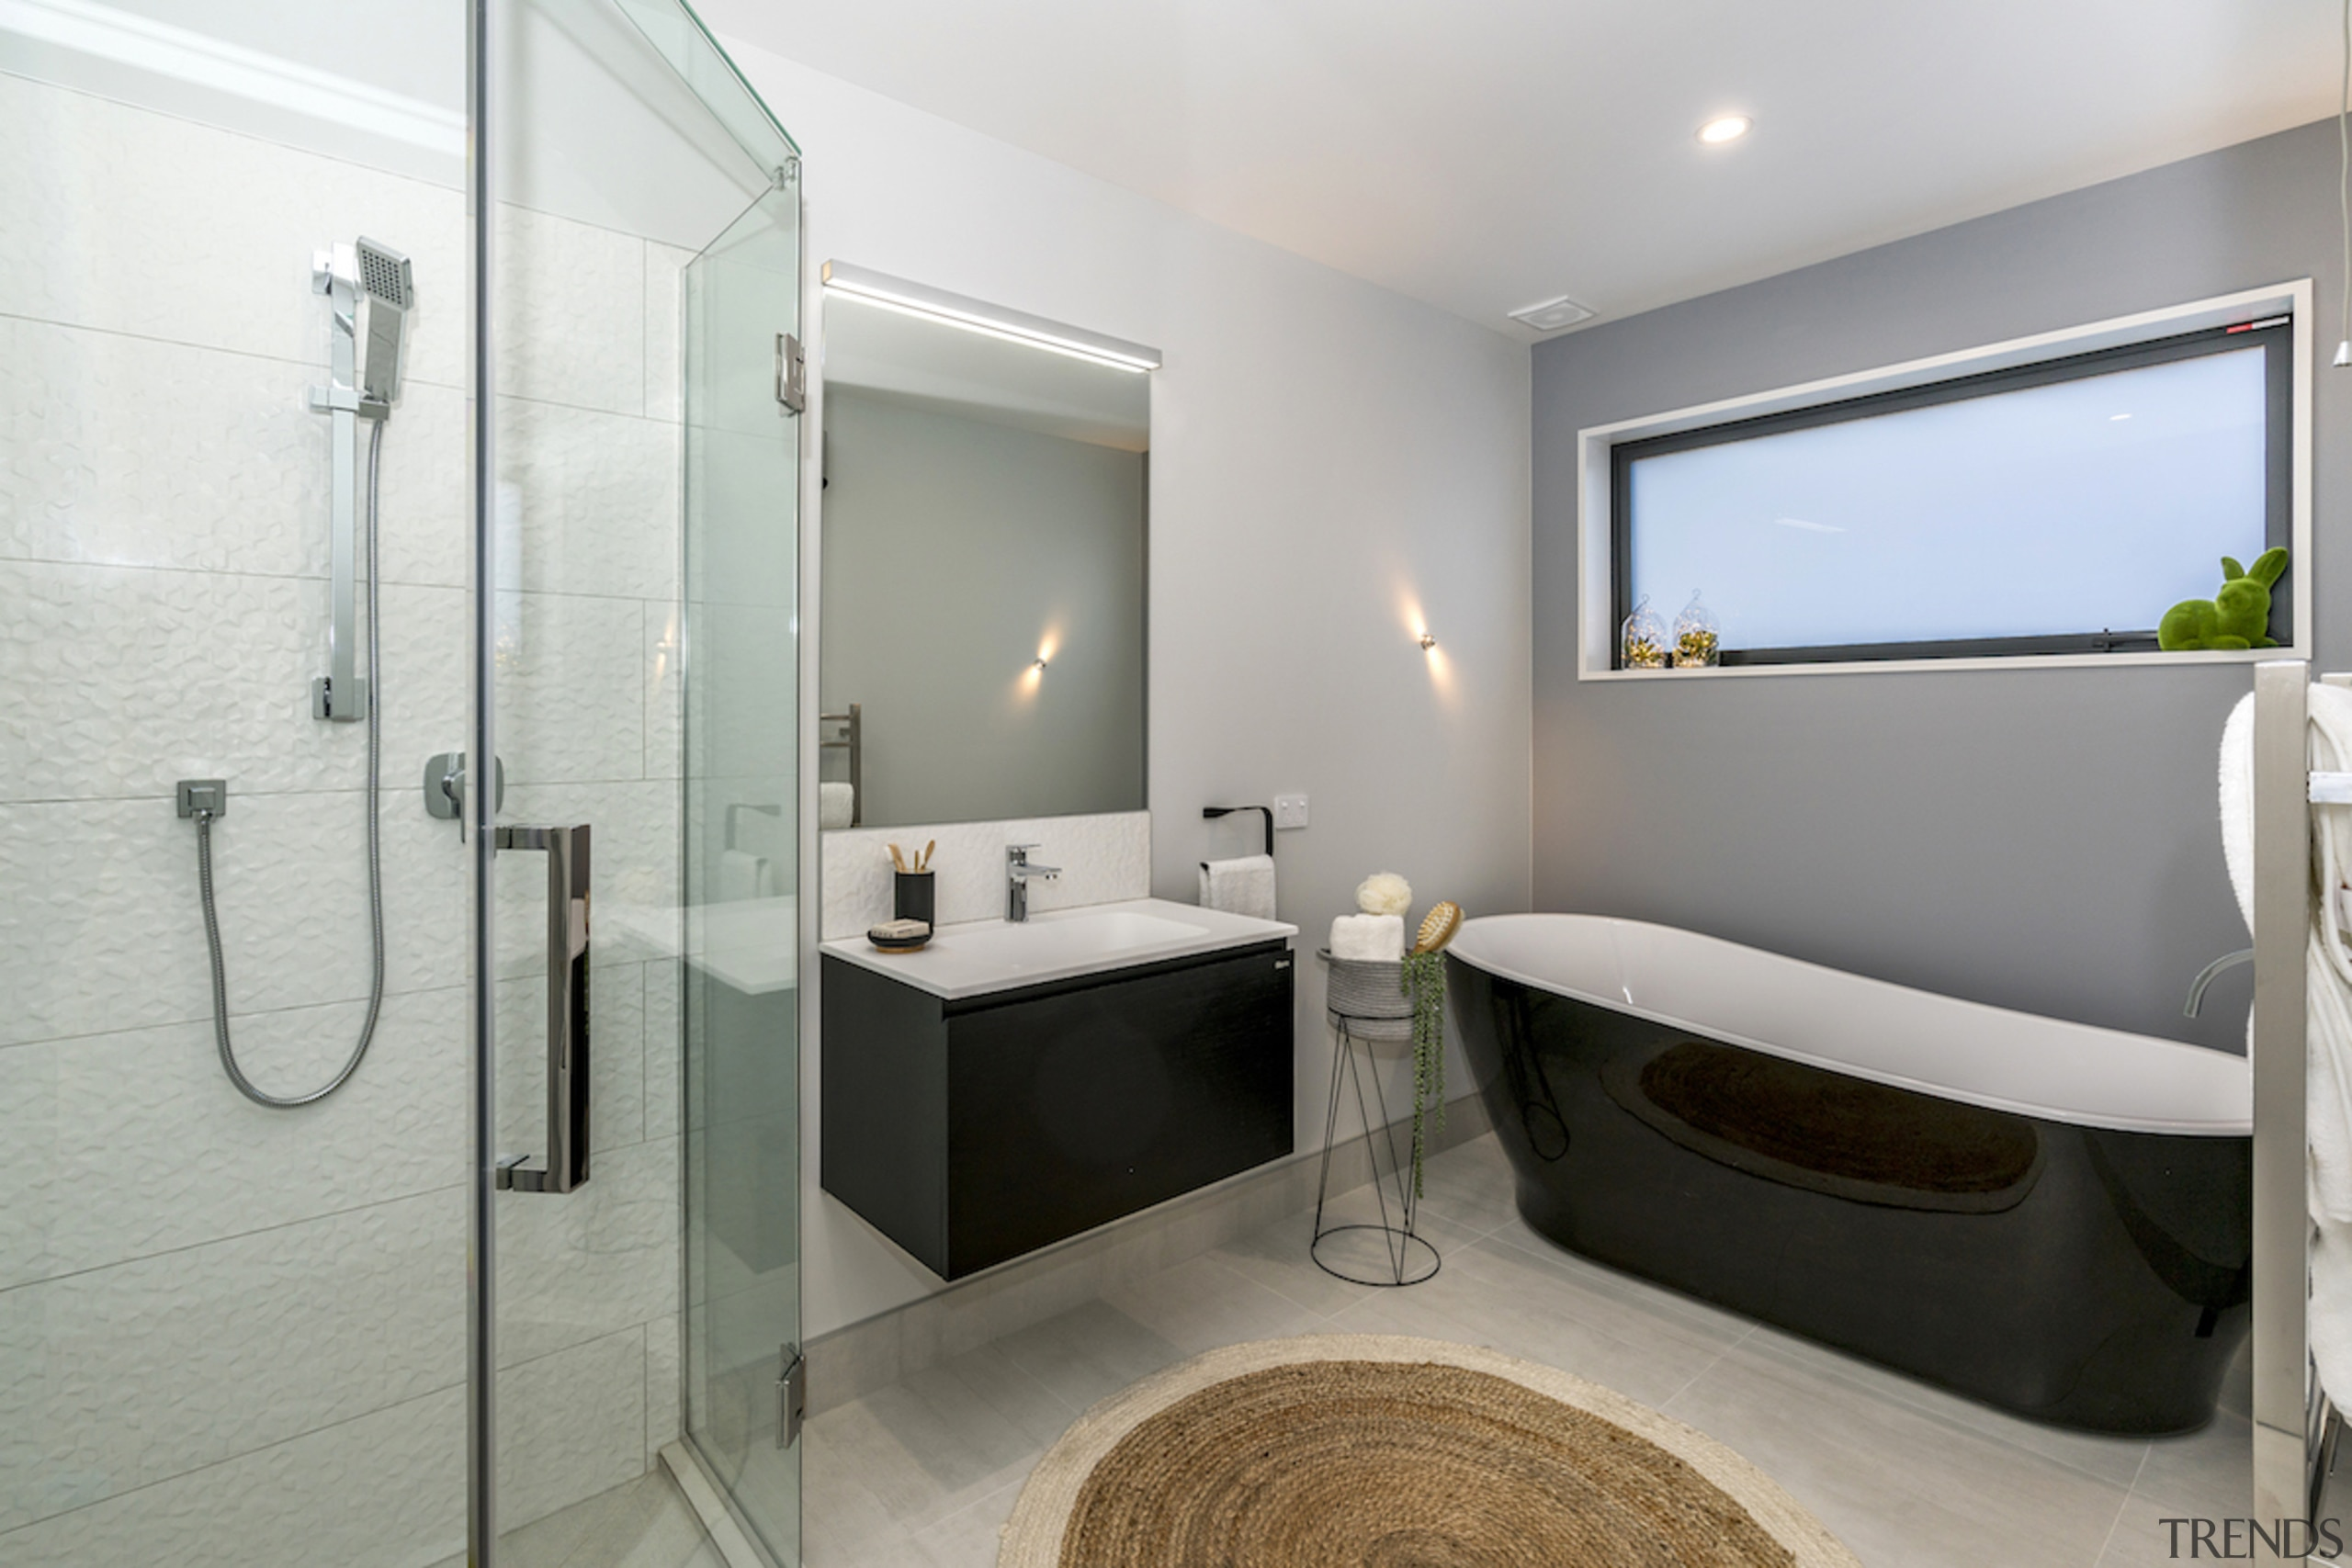 The house is equipped with a 4 Kw bathroom, interior design, real estate, room, gray